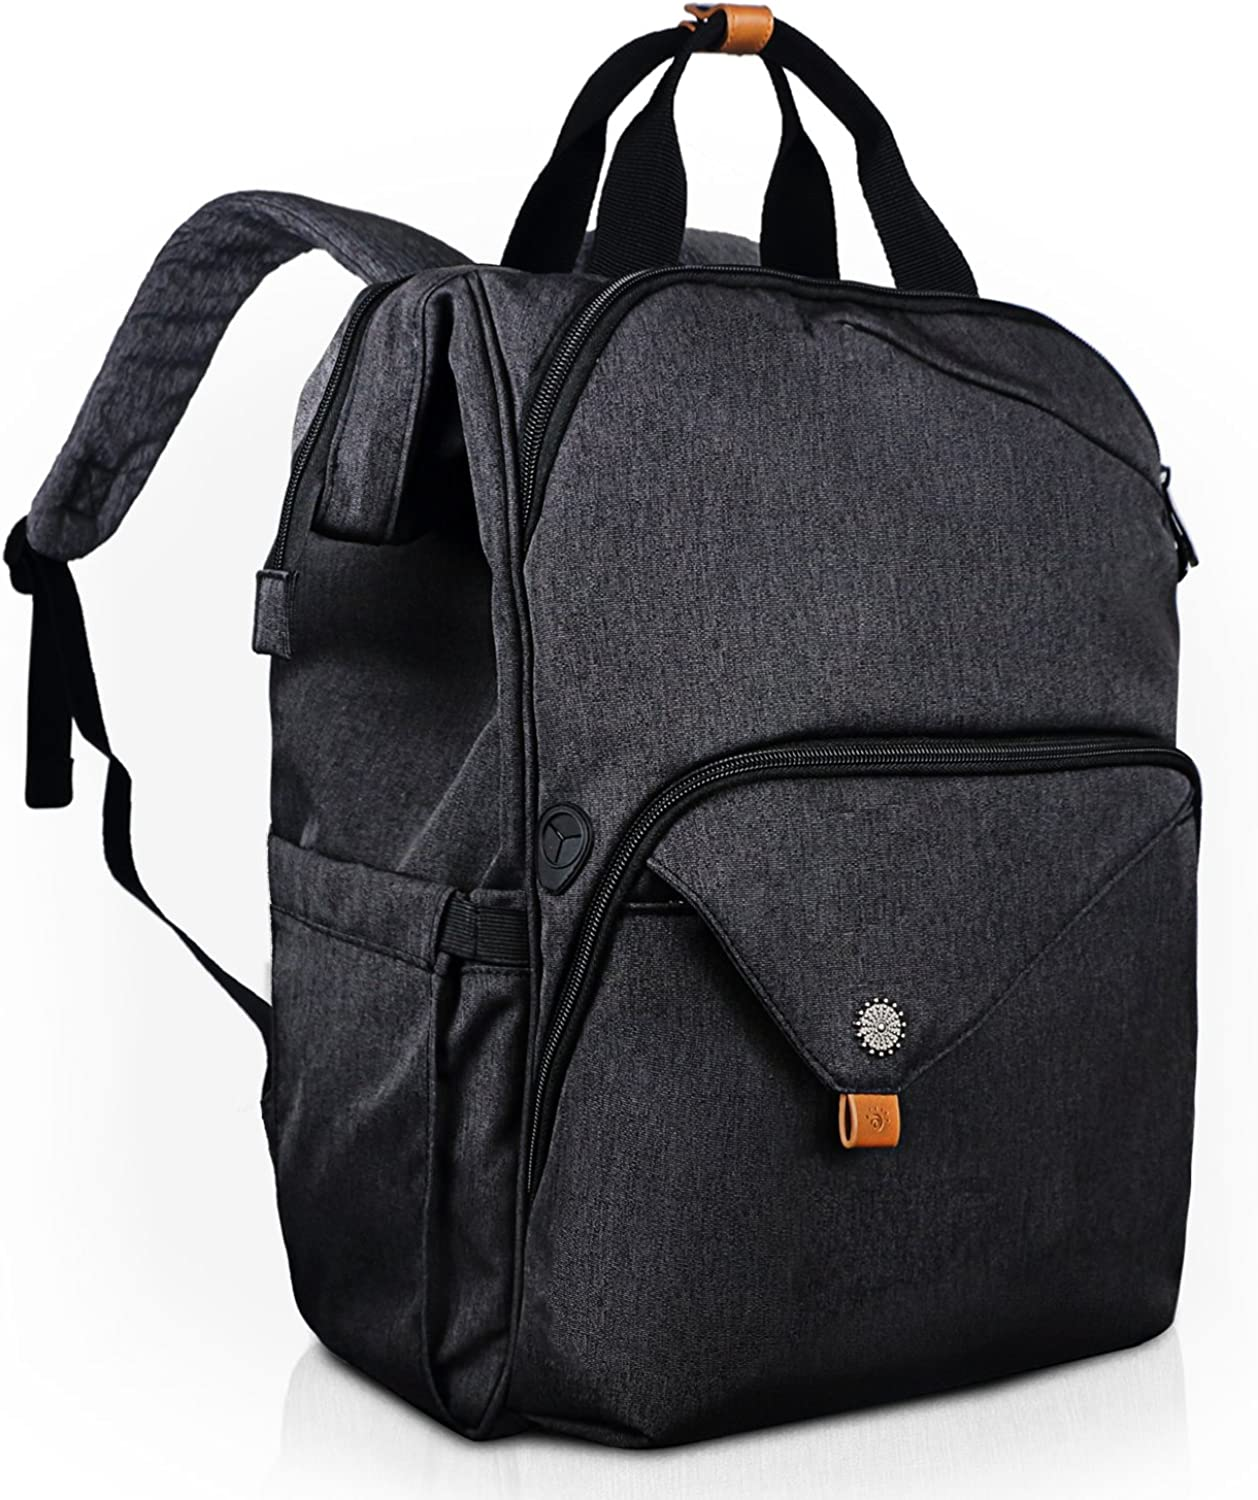 Hap Tim Laptop Backpack with Compartment fits 15.6 Computer for Women Men